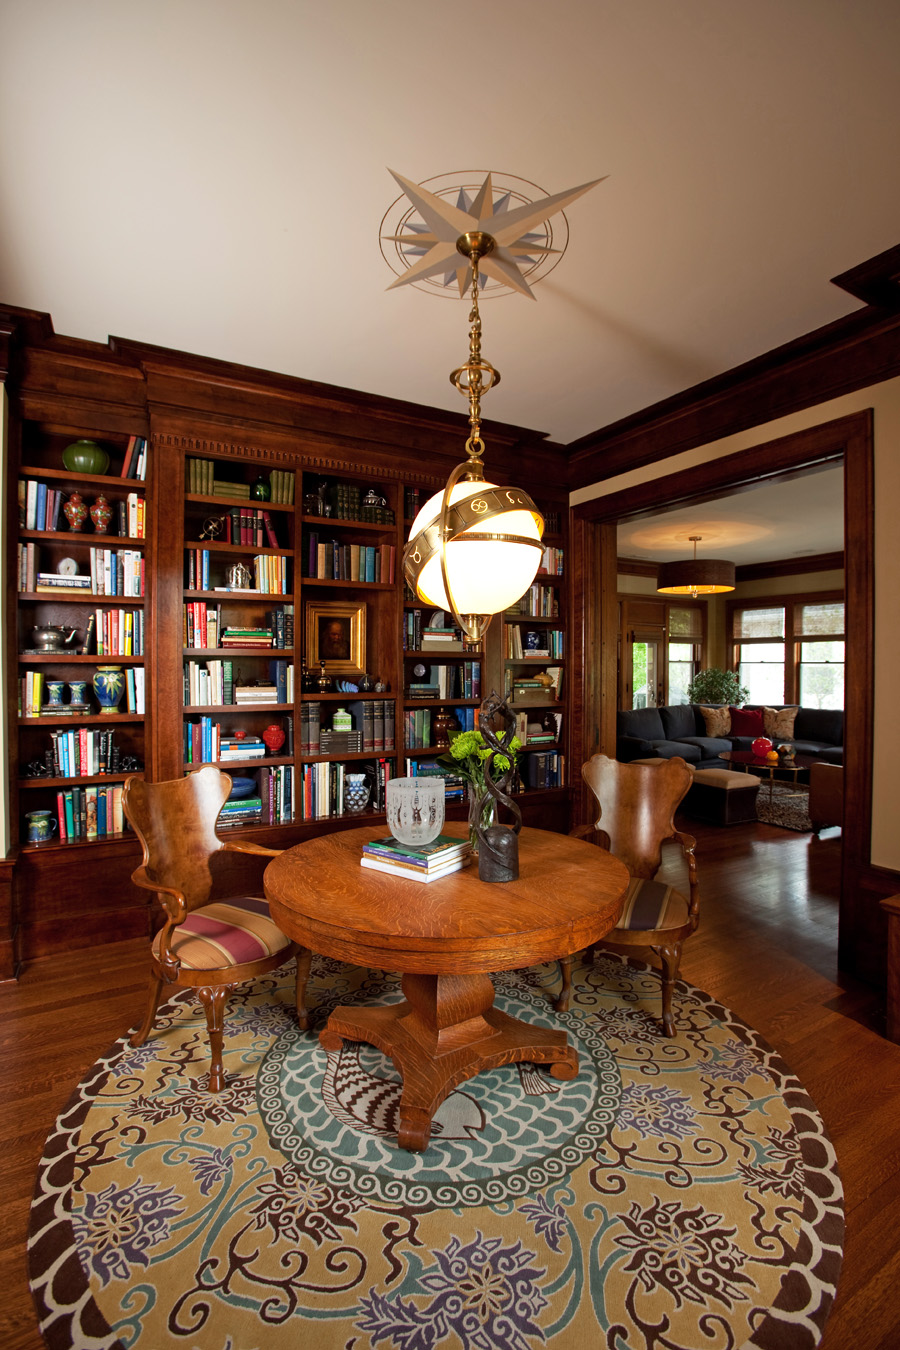 Elegant Study Room: Landfair On Furniture: Home Libraries That Ignite The